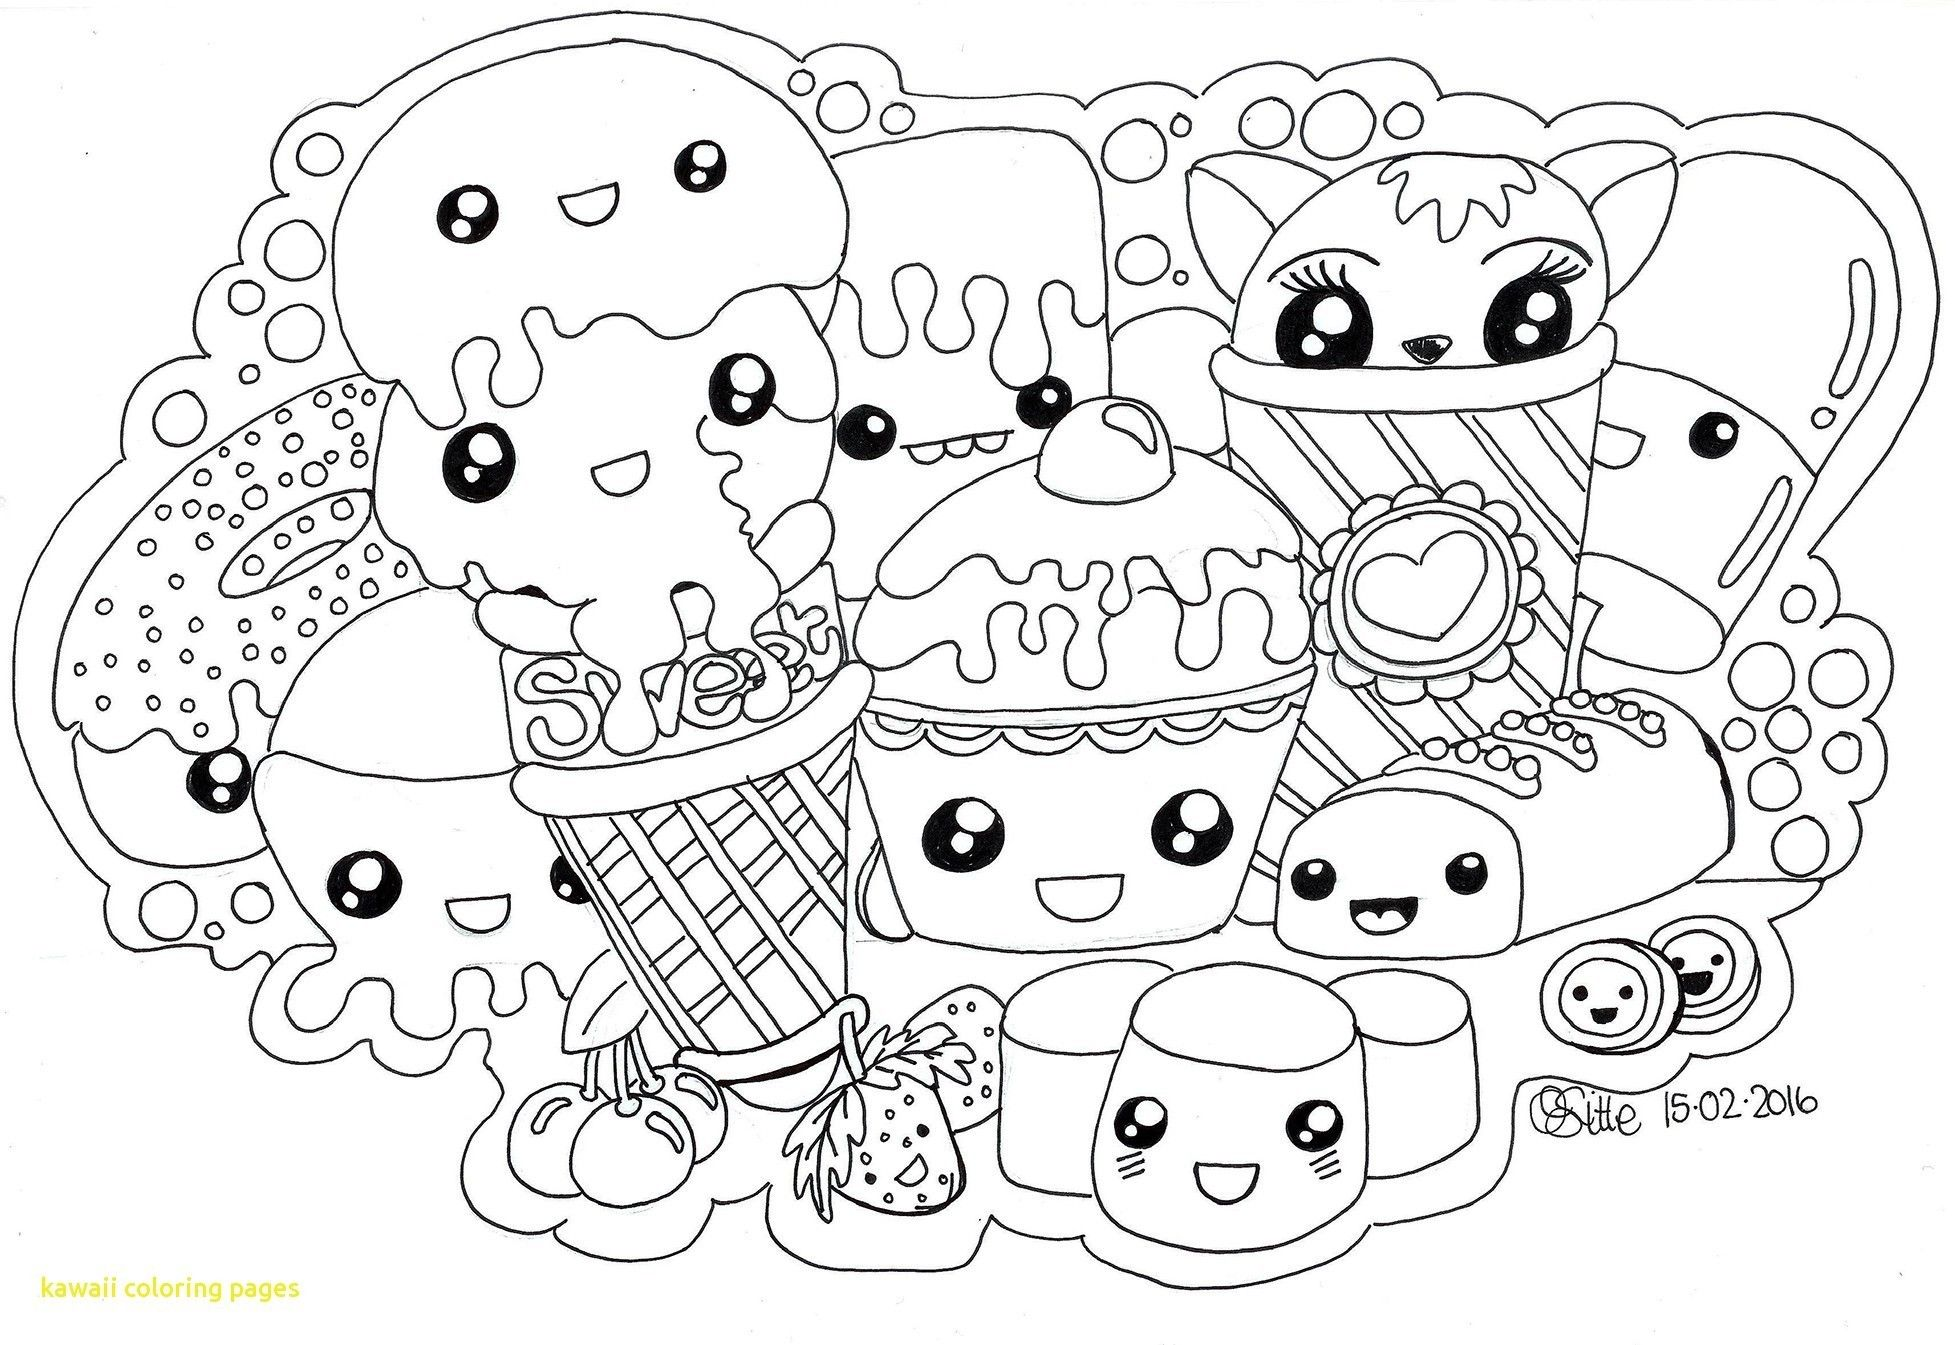 Collection Of Free Kawaii Coloring Pages Download Them And Try To Solve Doodle Coloring Cute Food Drawings Unicorn Coloring Pages